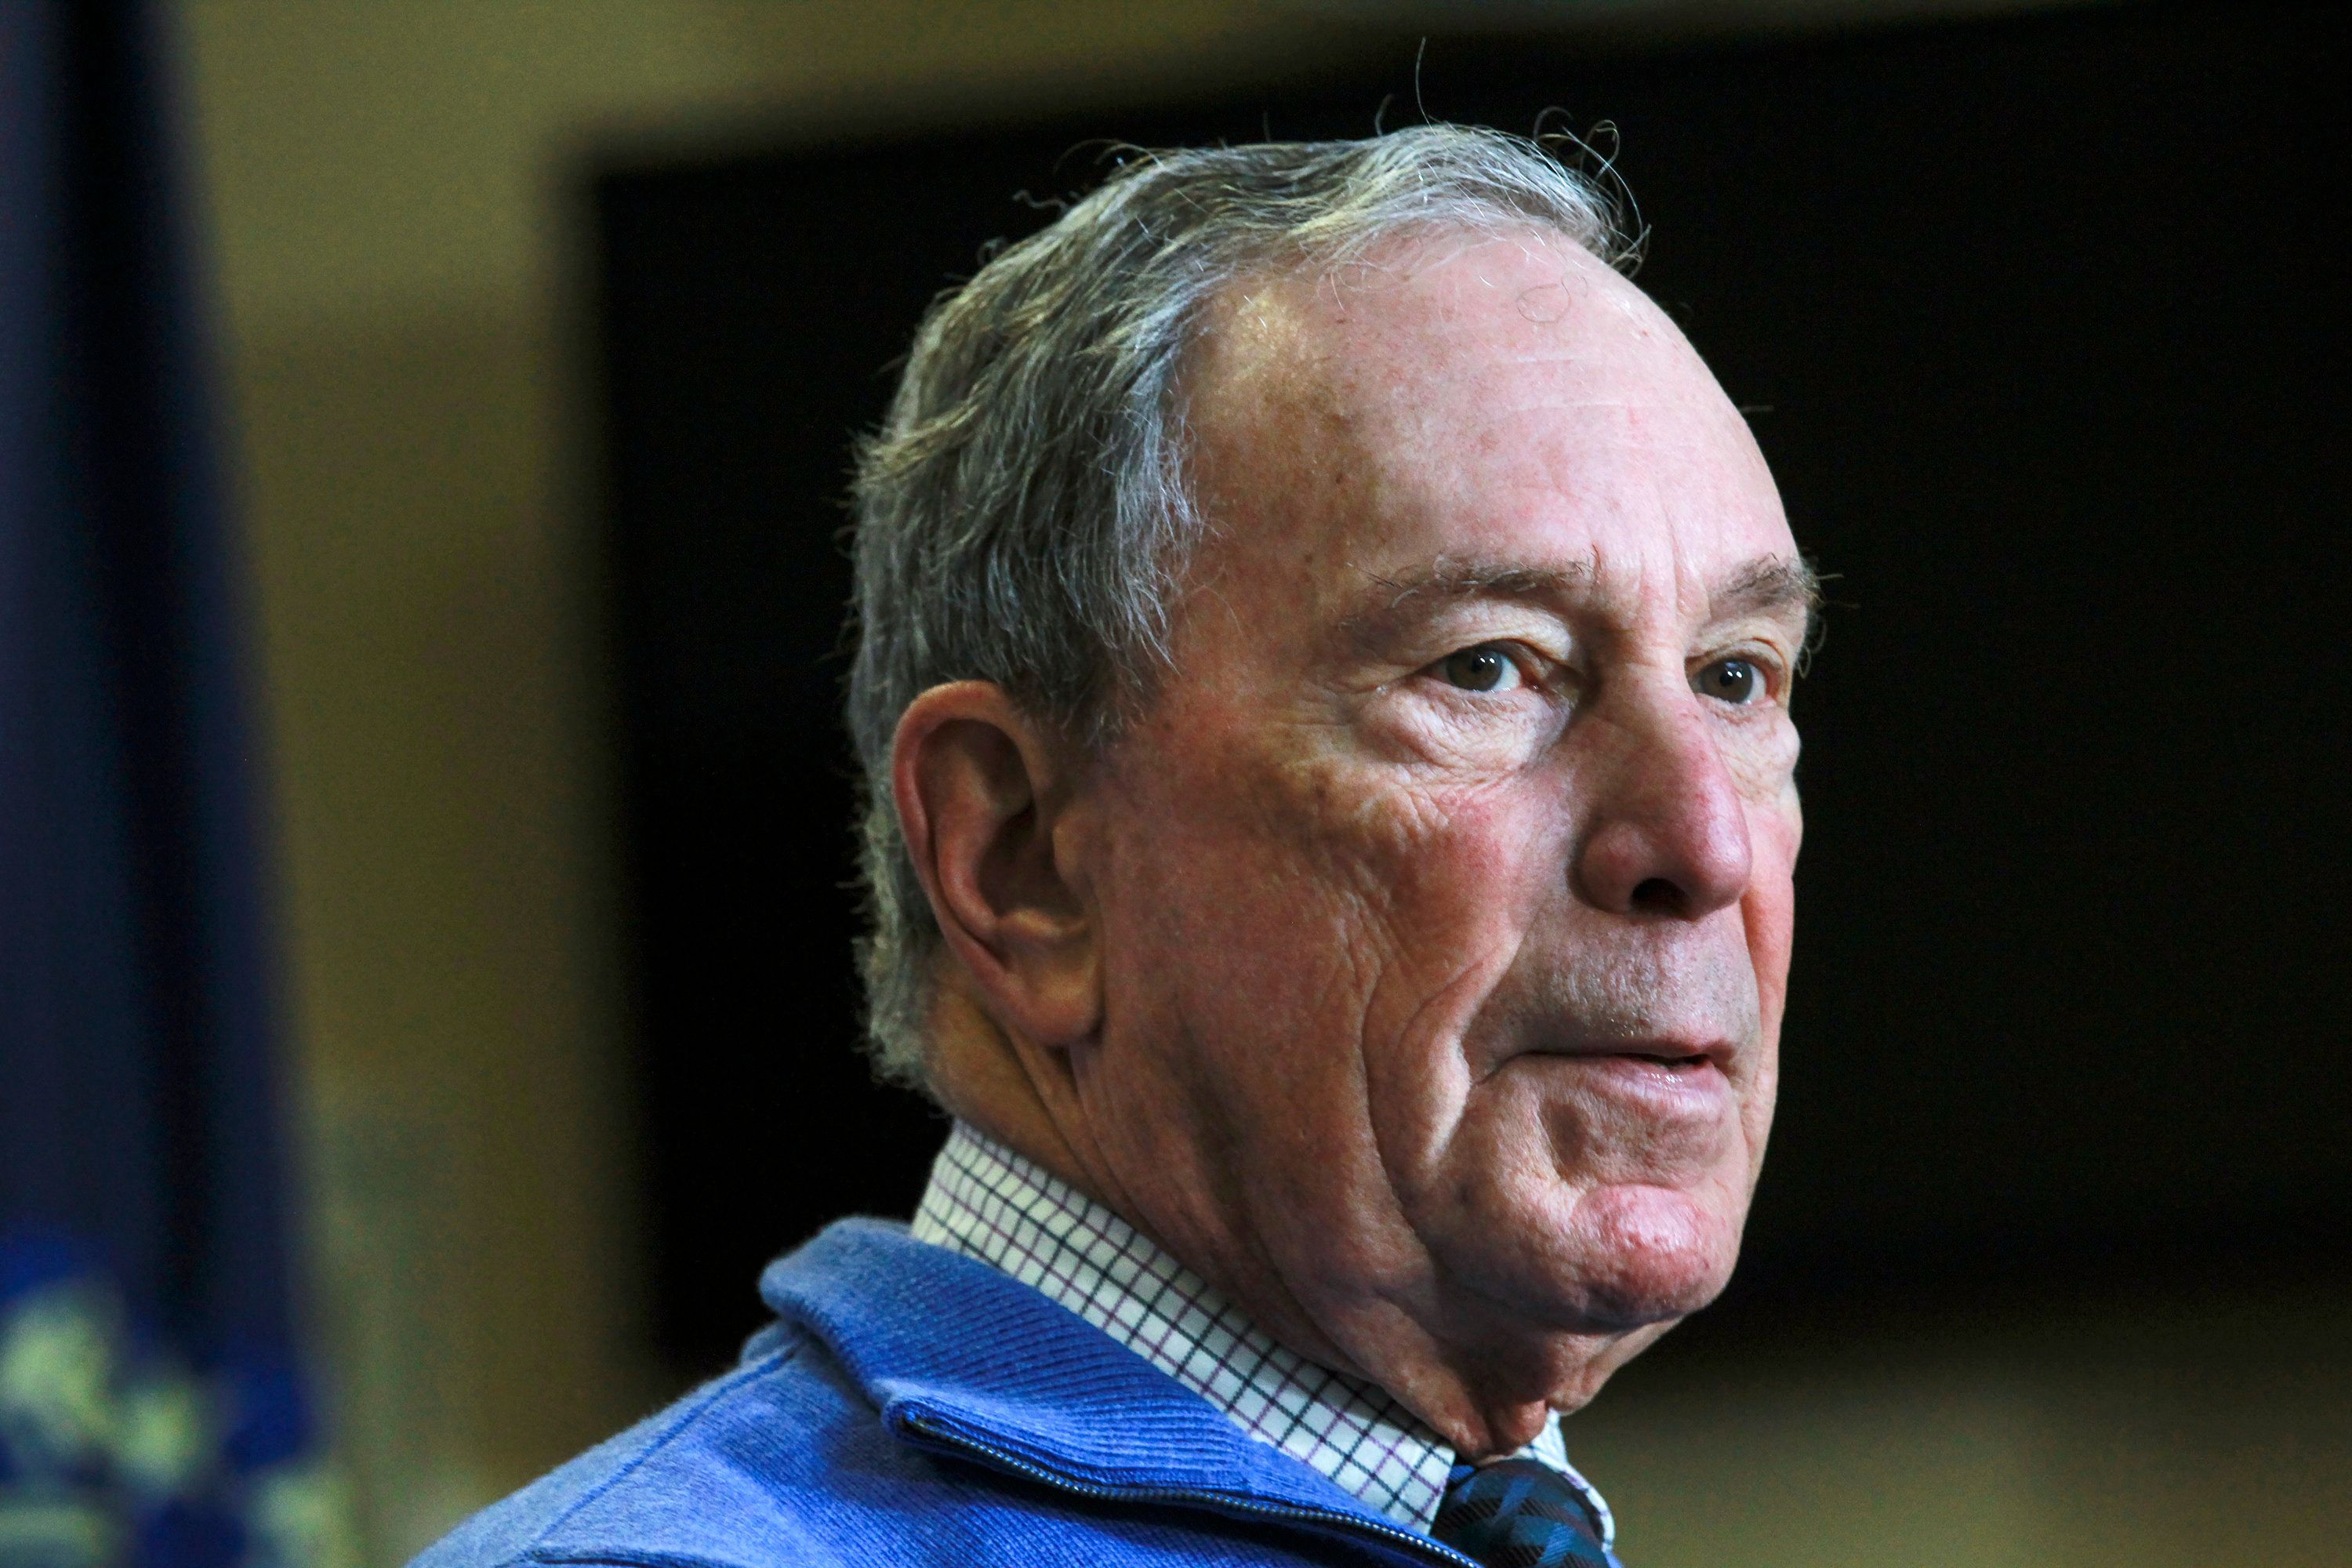 Michael Bloomberg the billionaire former mayor of New York City has pumped more than $40 million into super PACs in October